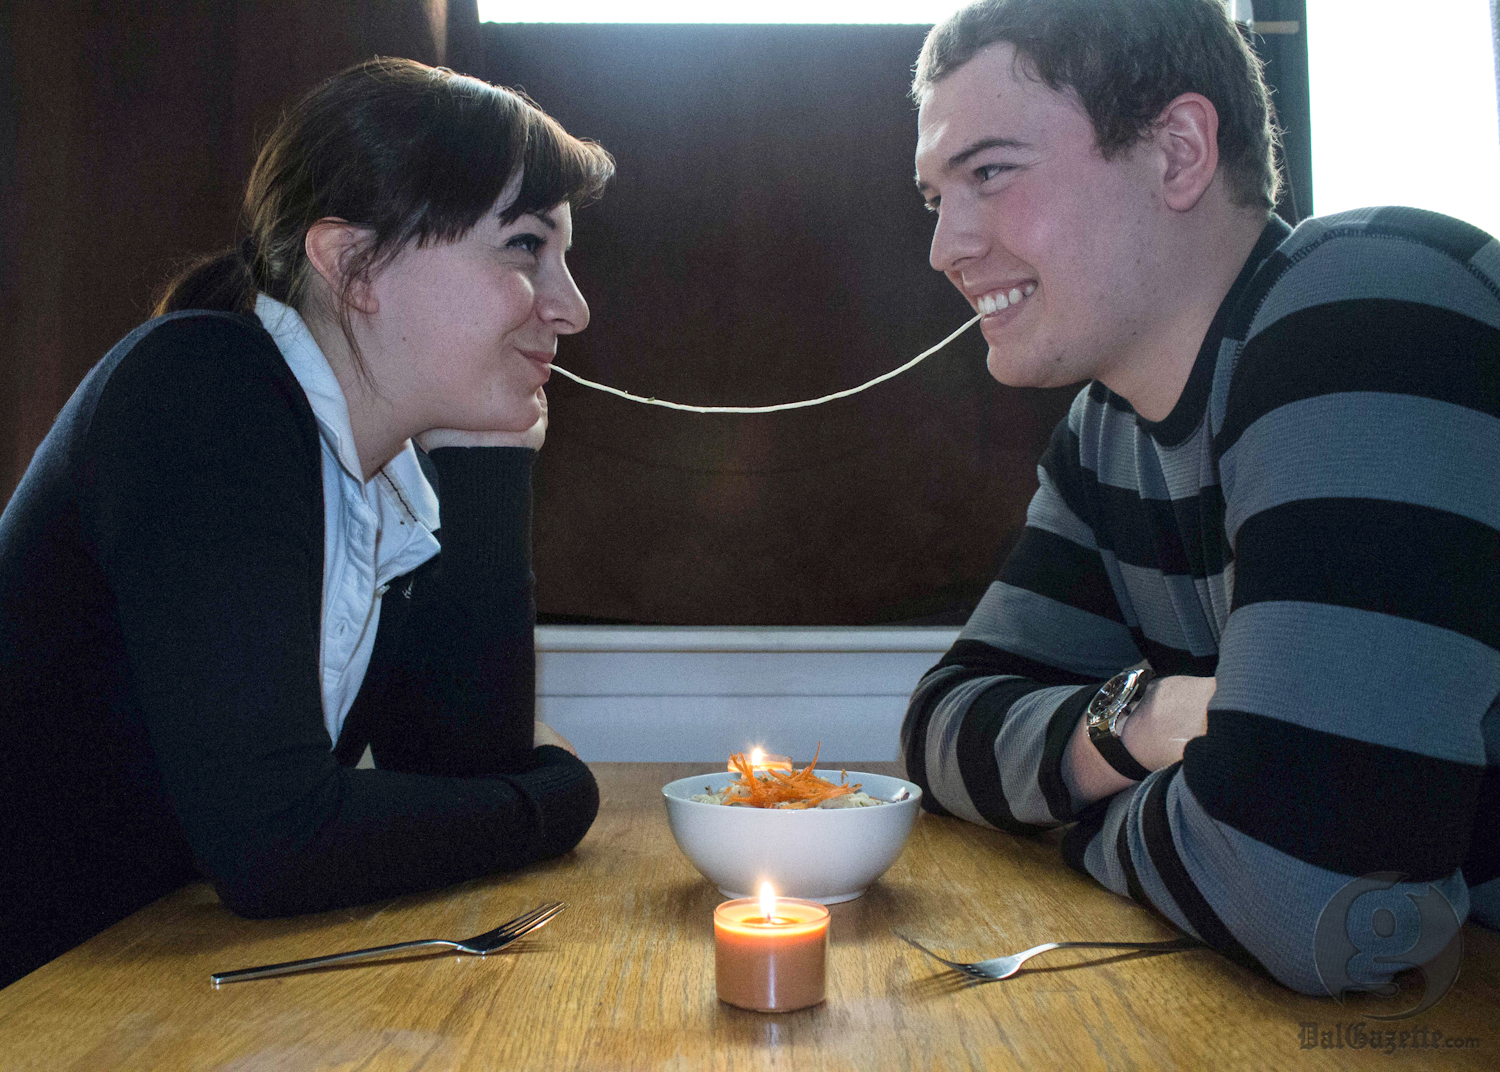 Cheap dates can  be great dates. (Photo: Amanda Rolfe)